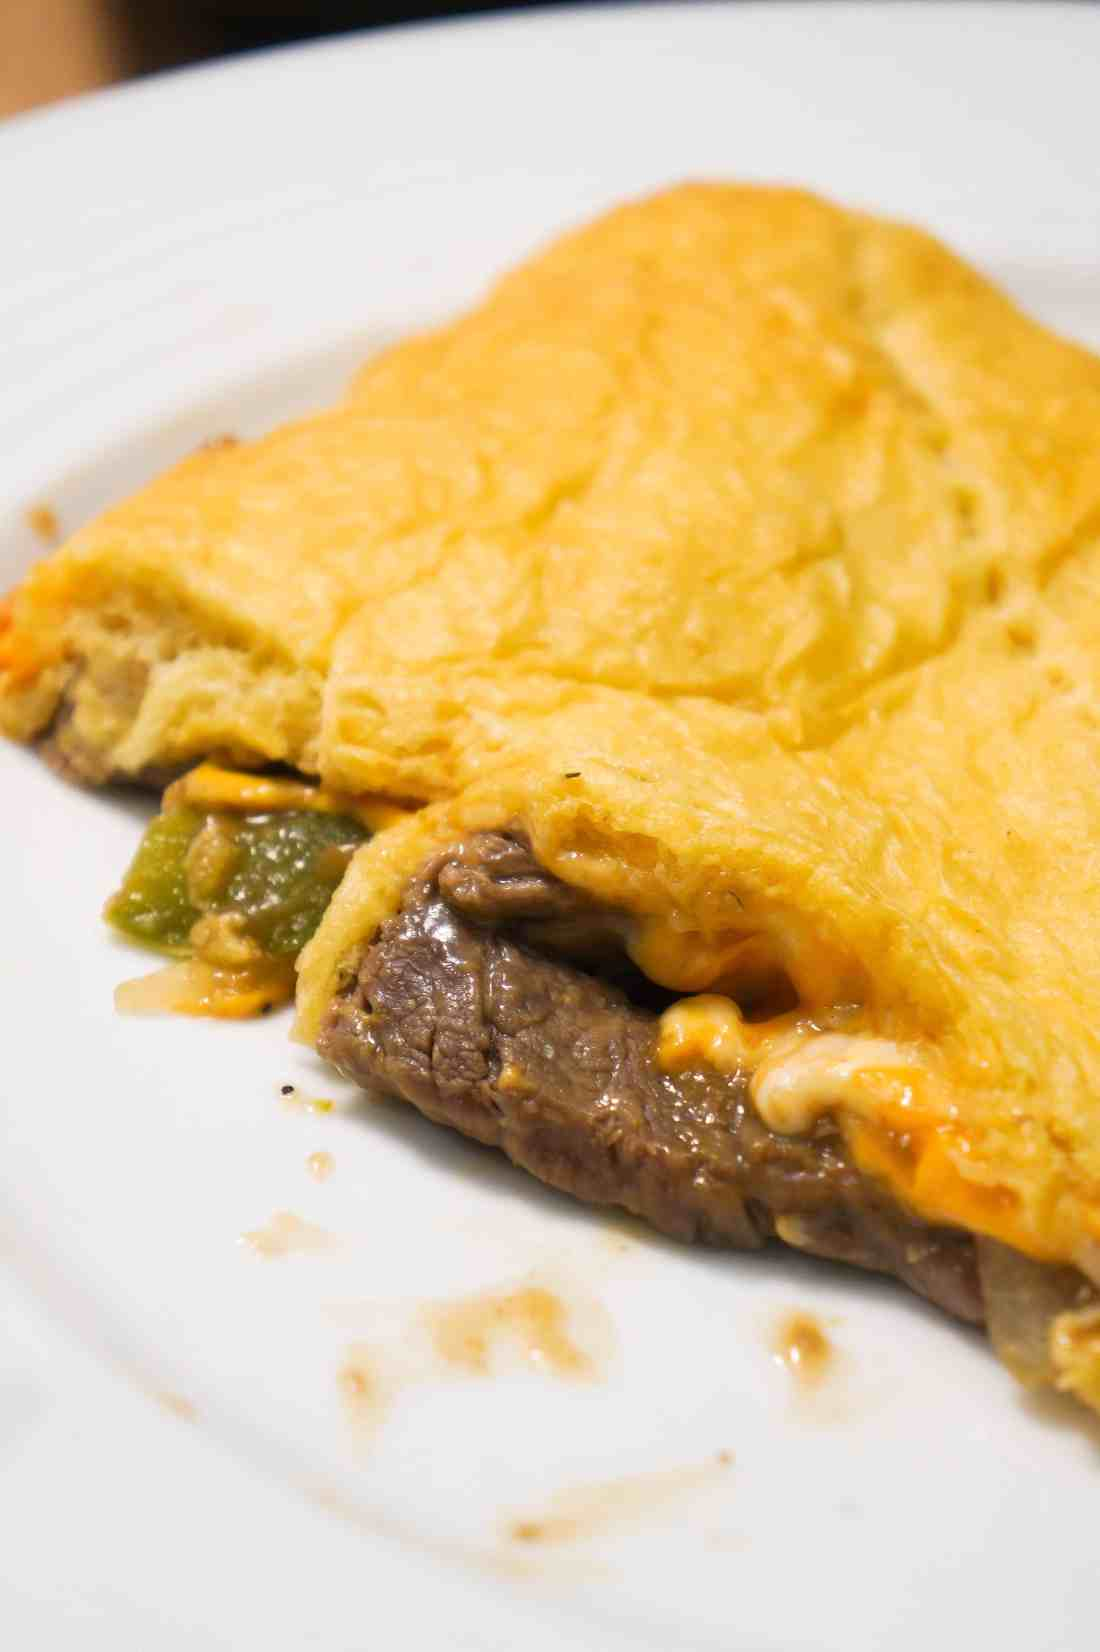 Philly Cheese Steak Crescent Bake is a twist on the Philly Cheese Sandwich.